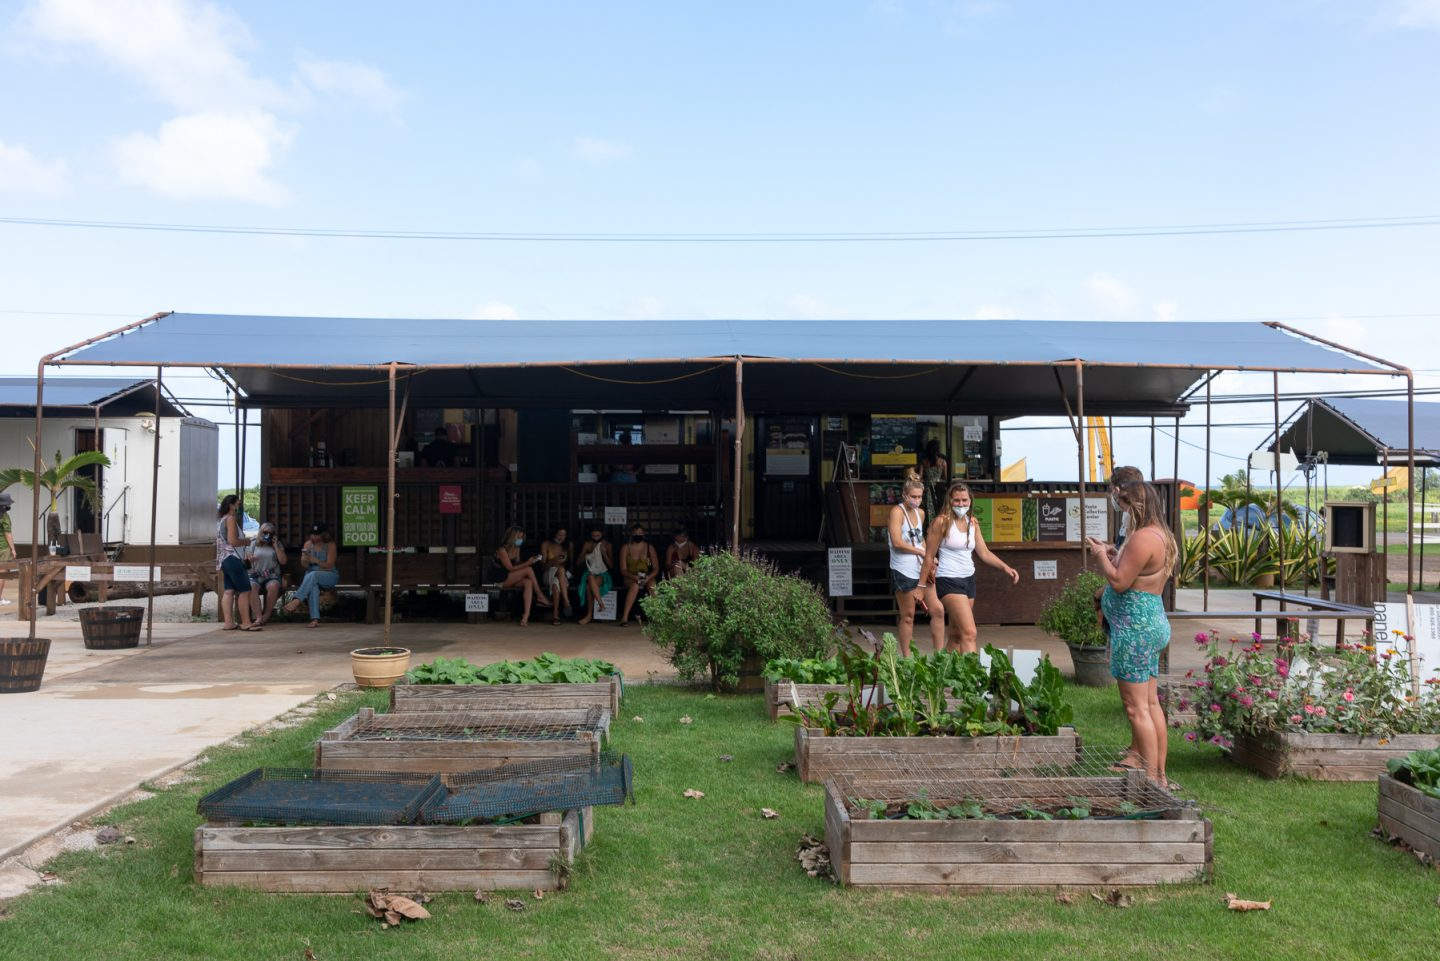 A partial view of the farm and the tented ordering area at Kahuku Farms.